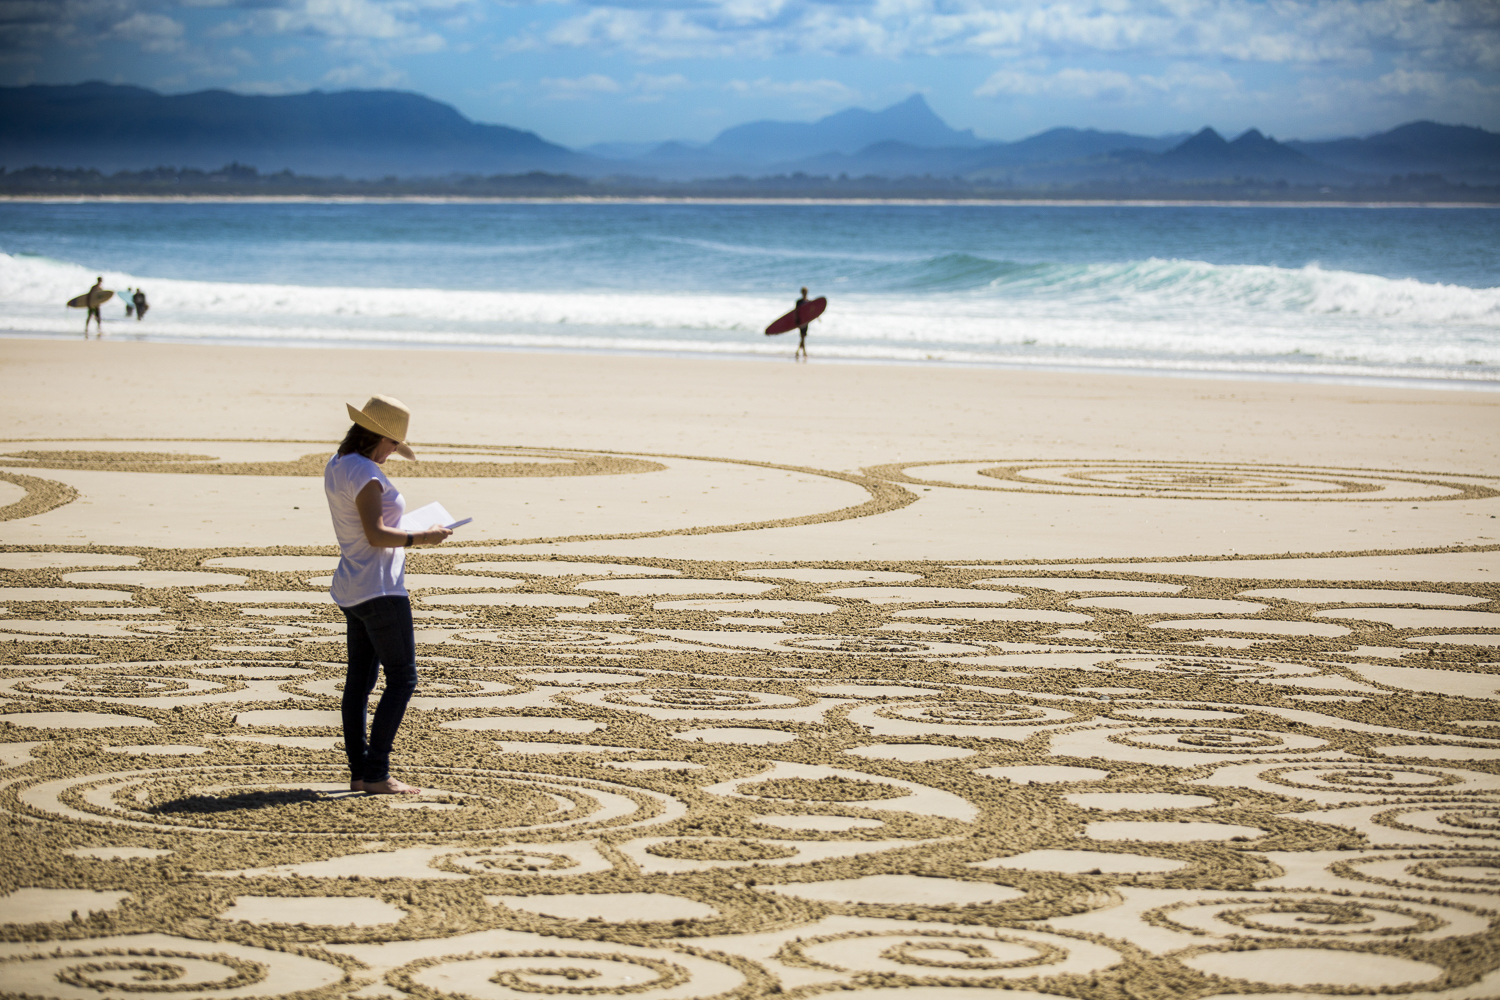 http://byronwritersfestival.com/wp-content/uploads/2016/05/Byron-Writers-Festival-Sand-Art-by-Craig-Gascoigne-Photo-by-Evan-Malcolm-8-copy.jpg